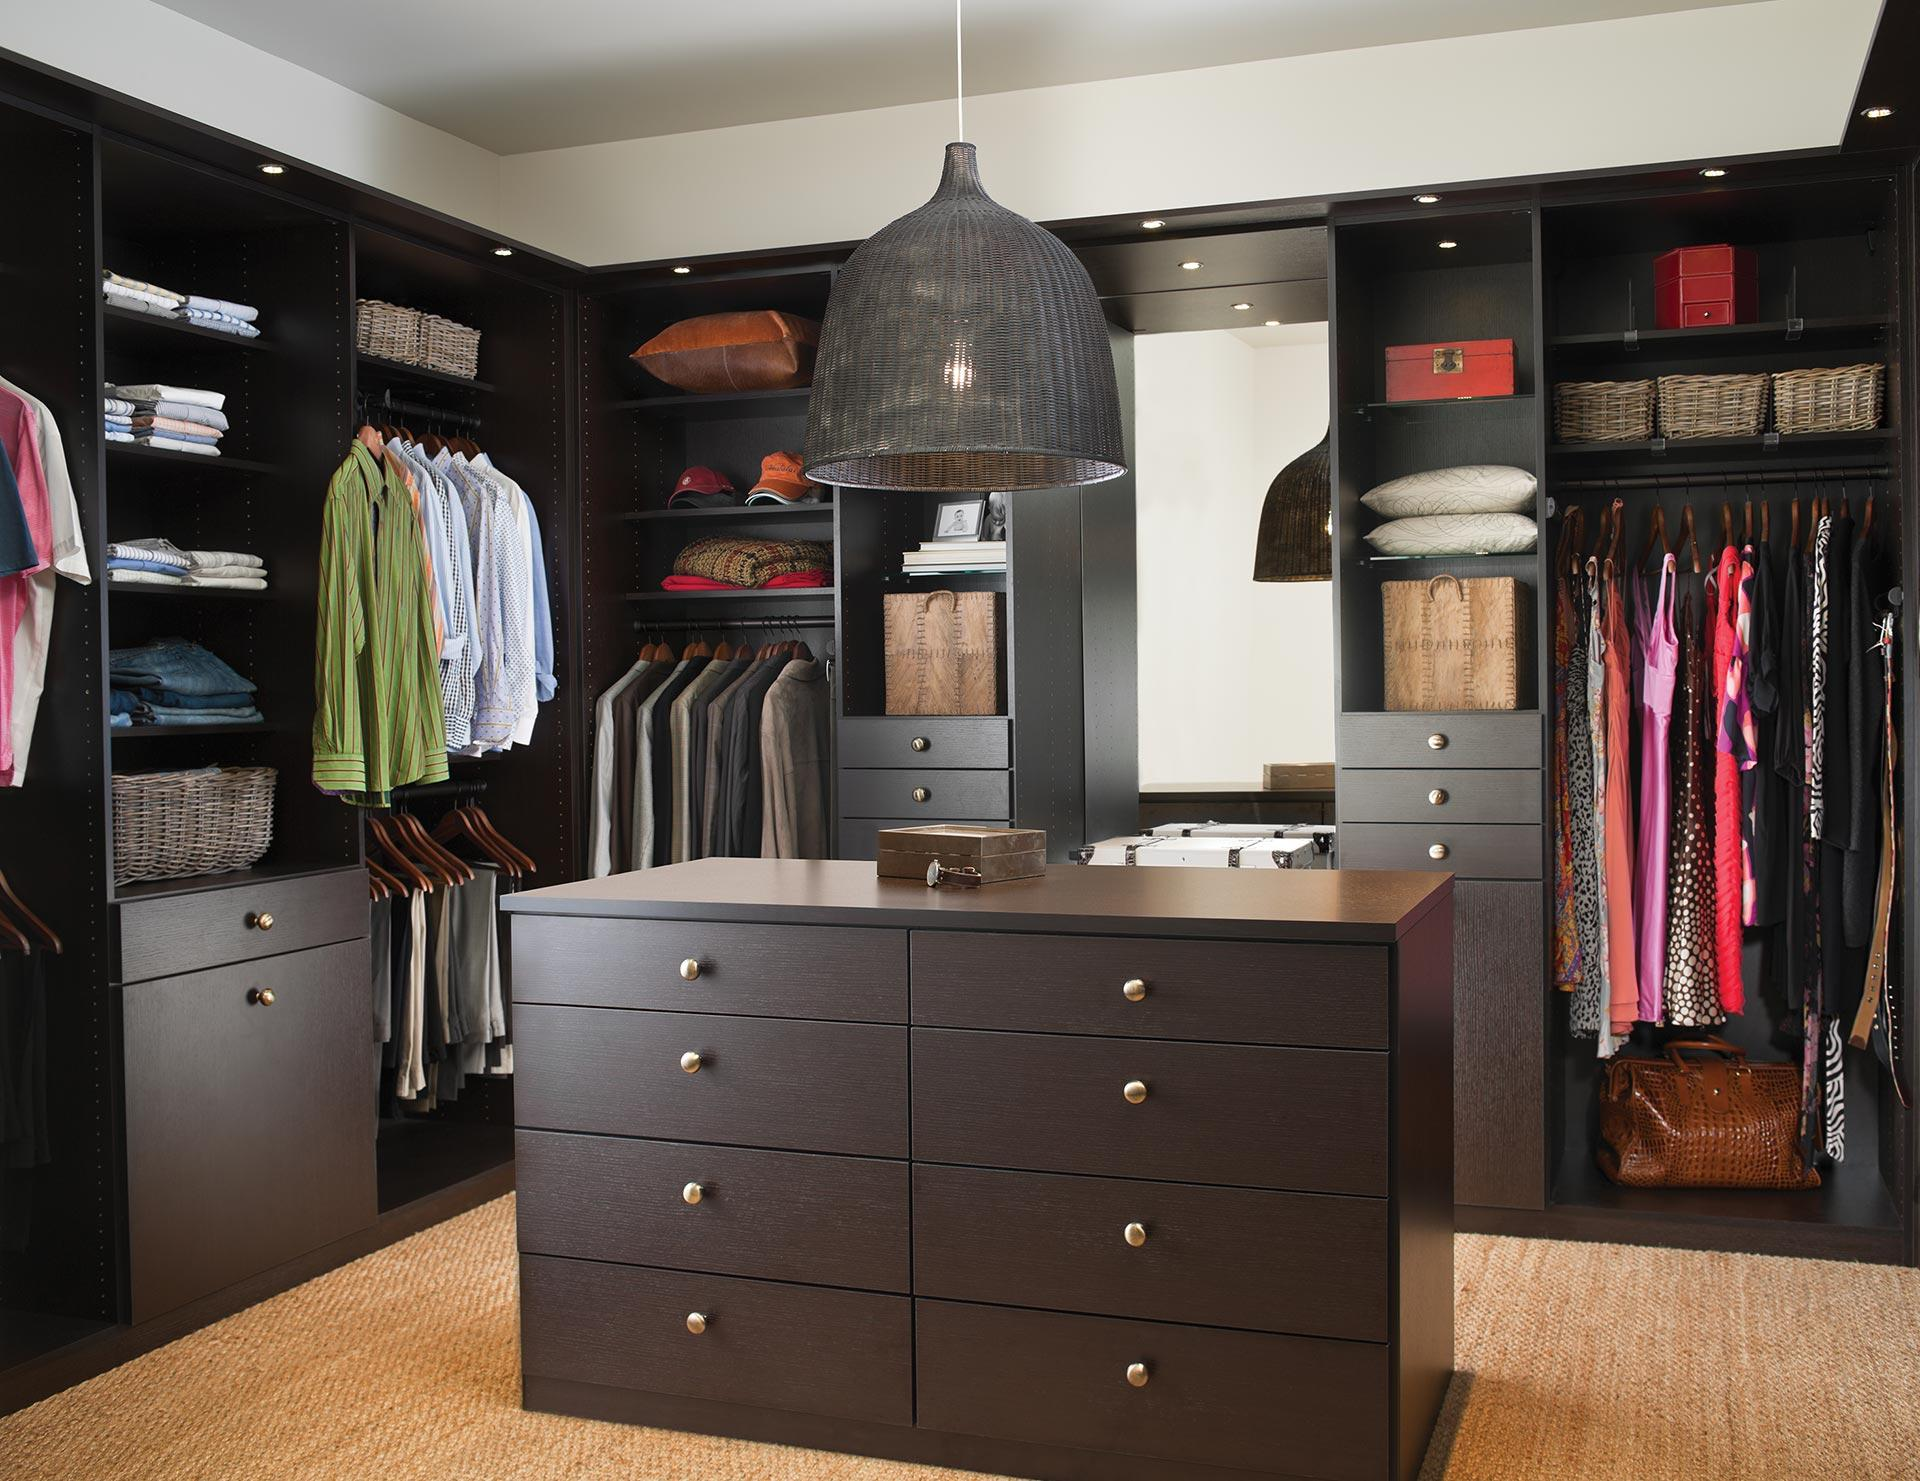 California Closets Montreal - Lee Master Walk in Closet Storage Solution